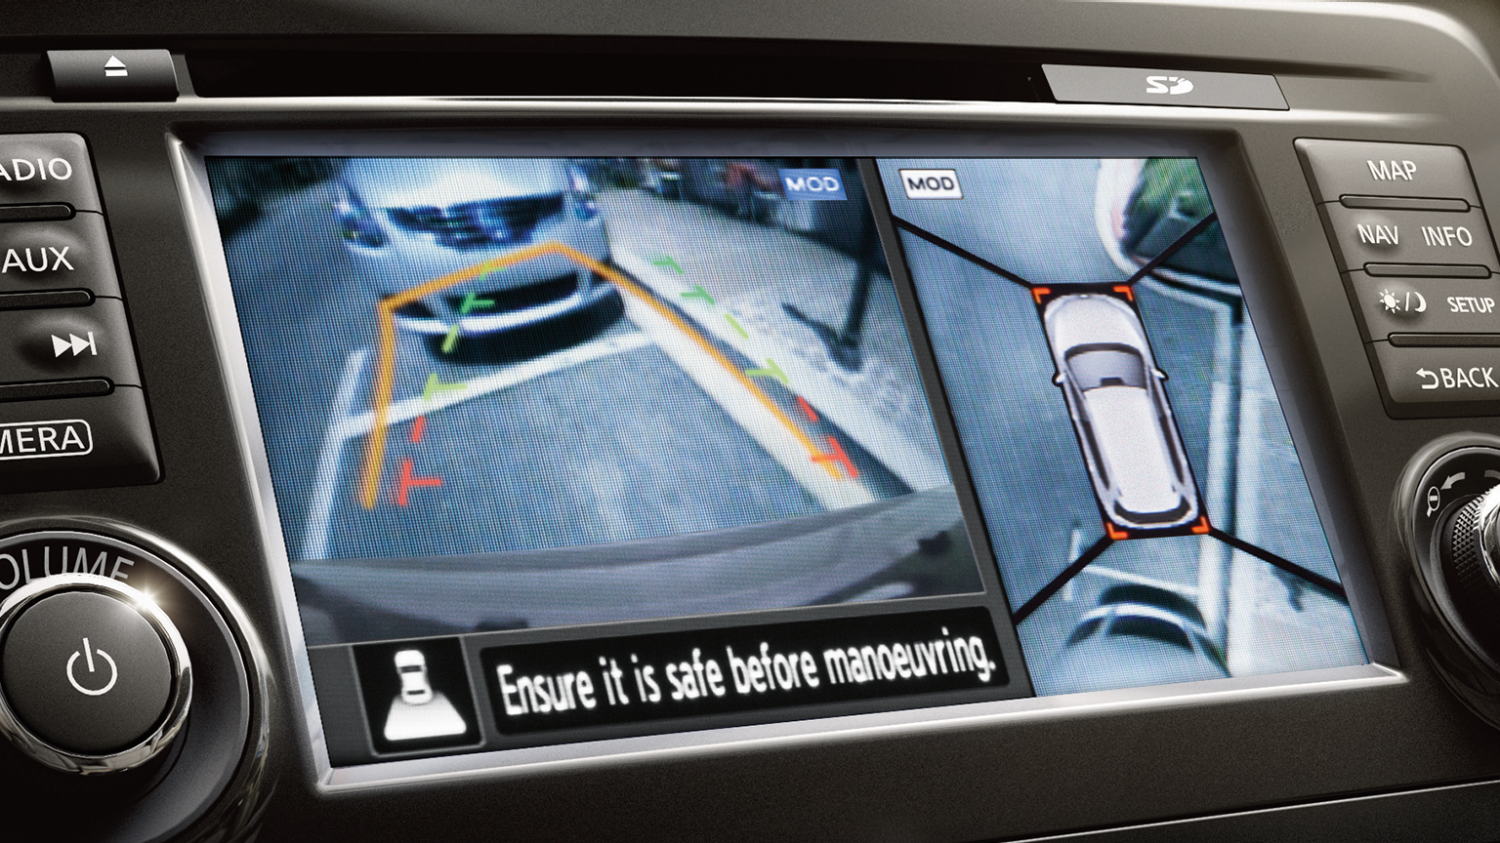 Nissan X-TRAIL SUV - Around View Monitor